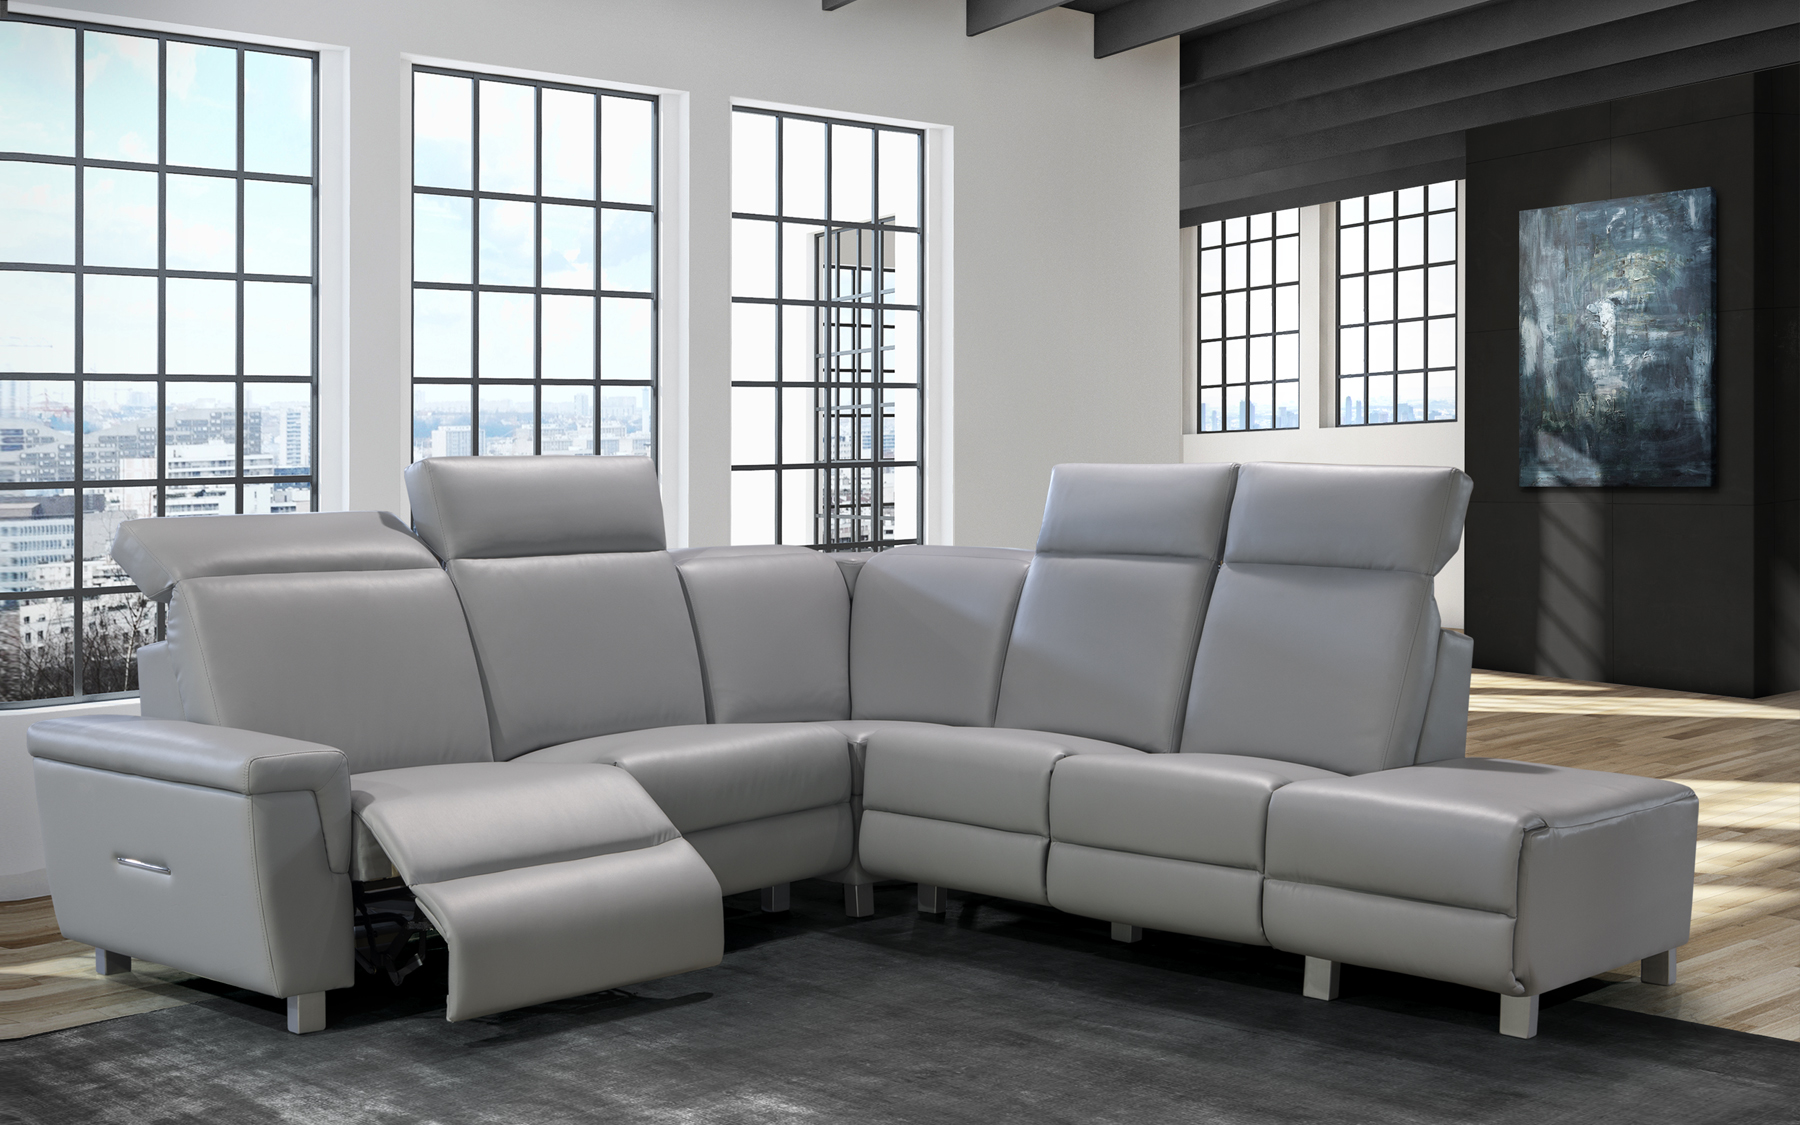 RECLINABLE SECTIONALS